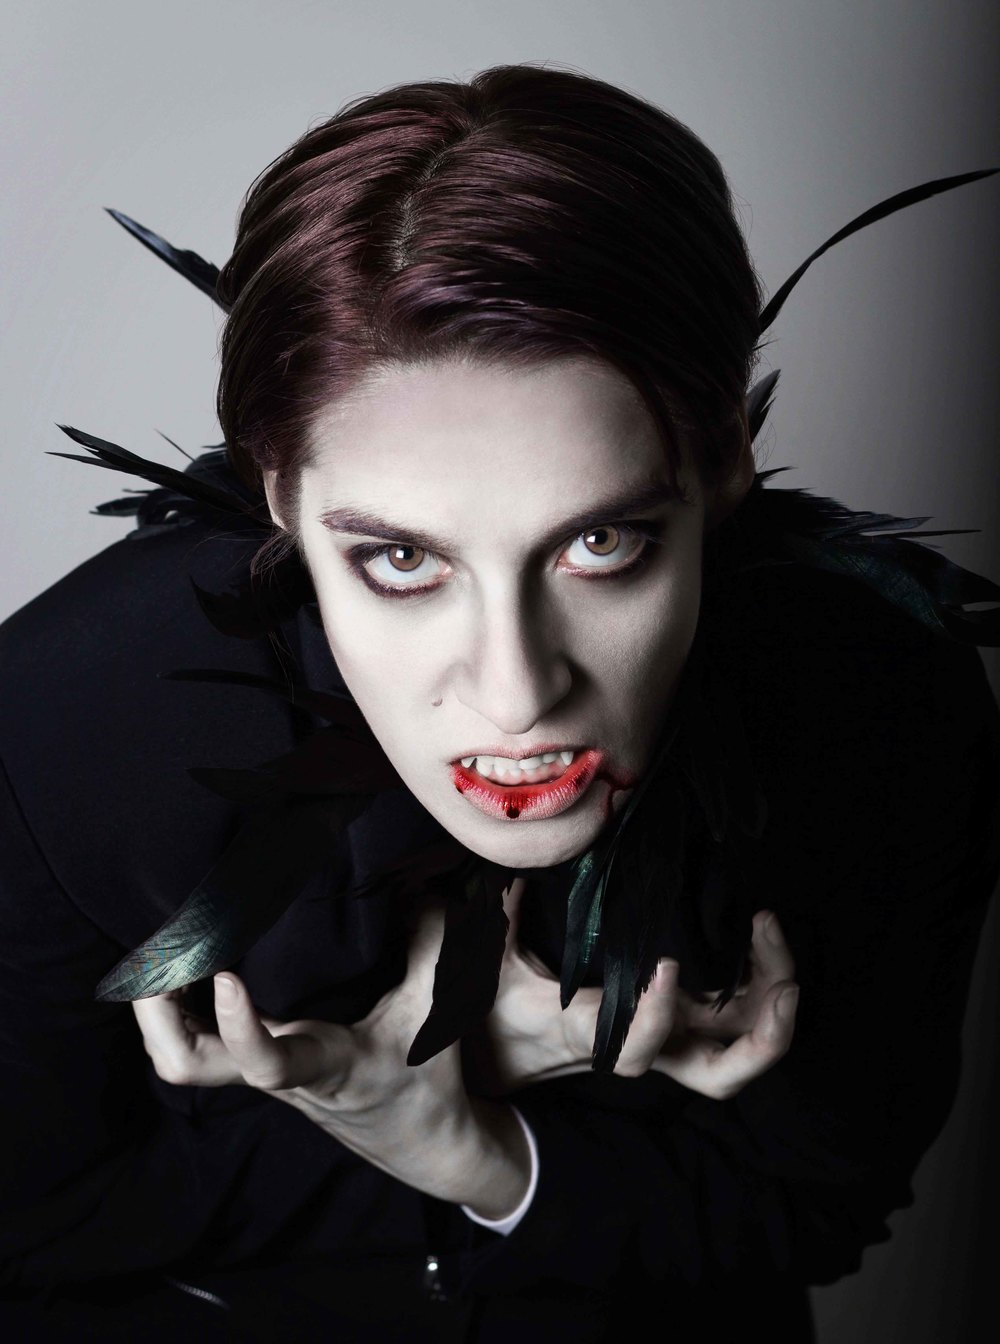 portrait of a young woman in vampire makeup